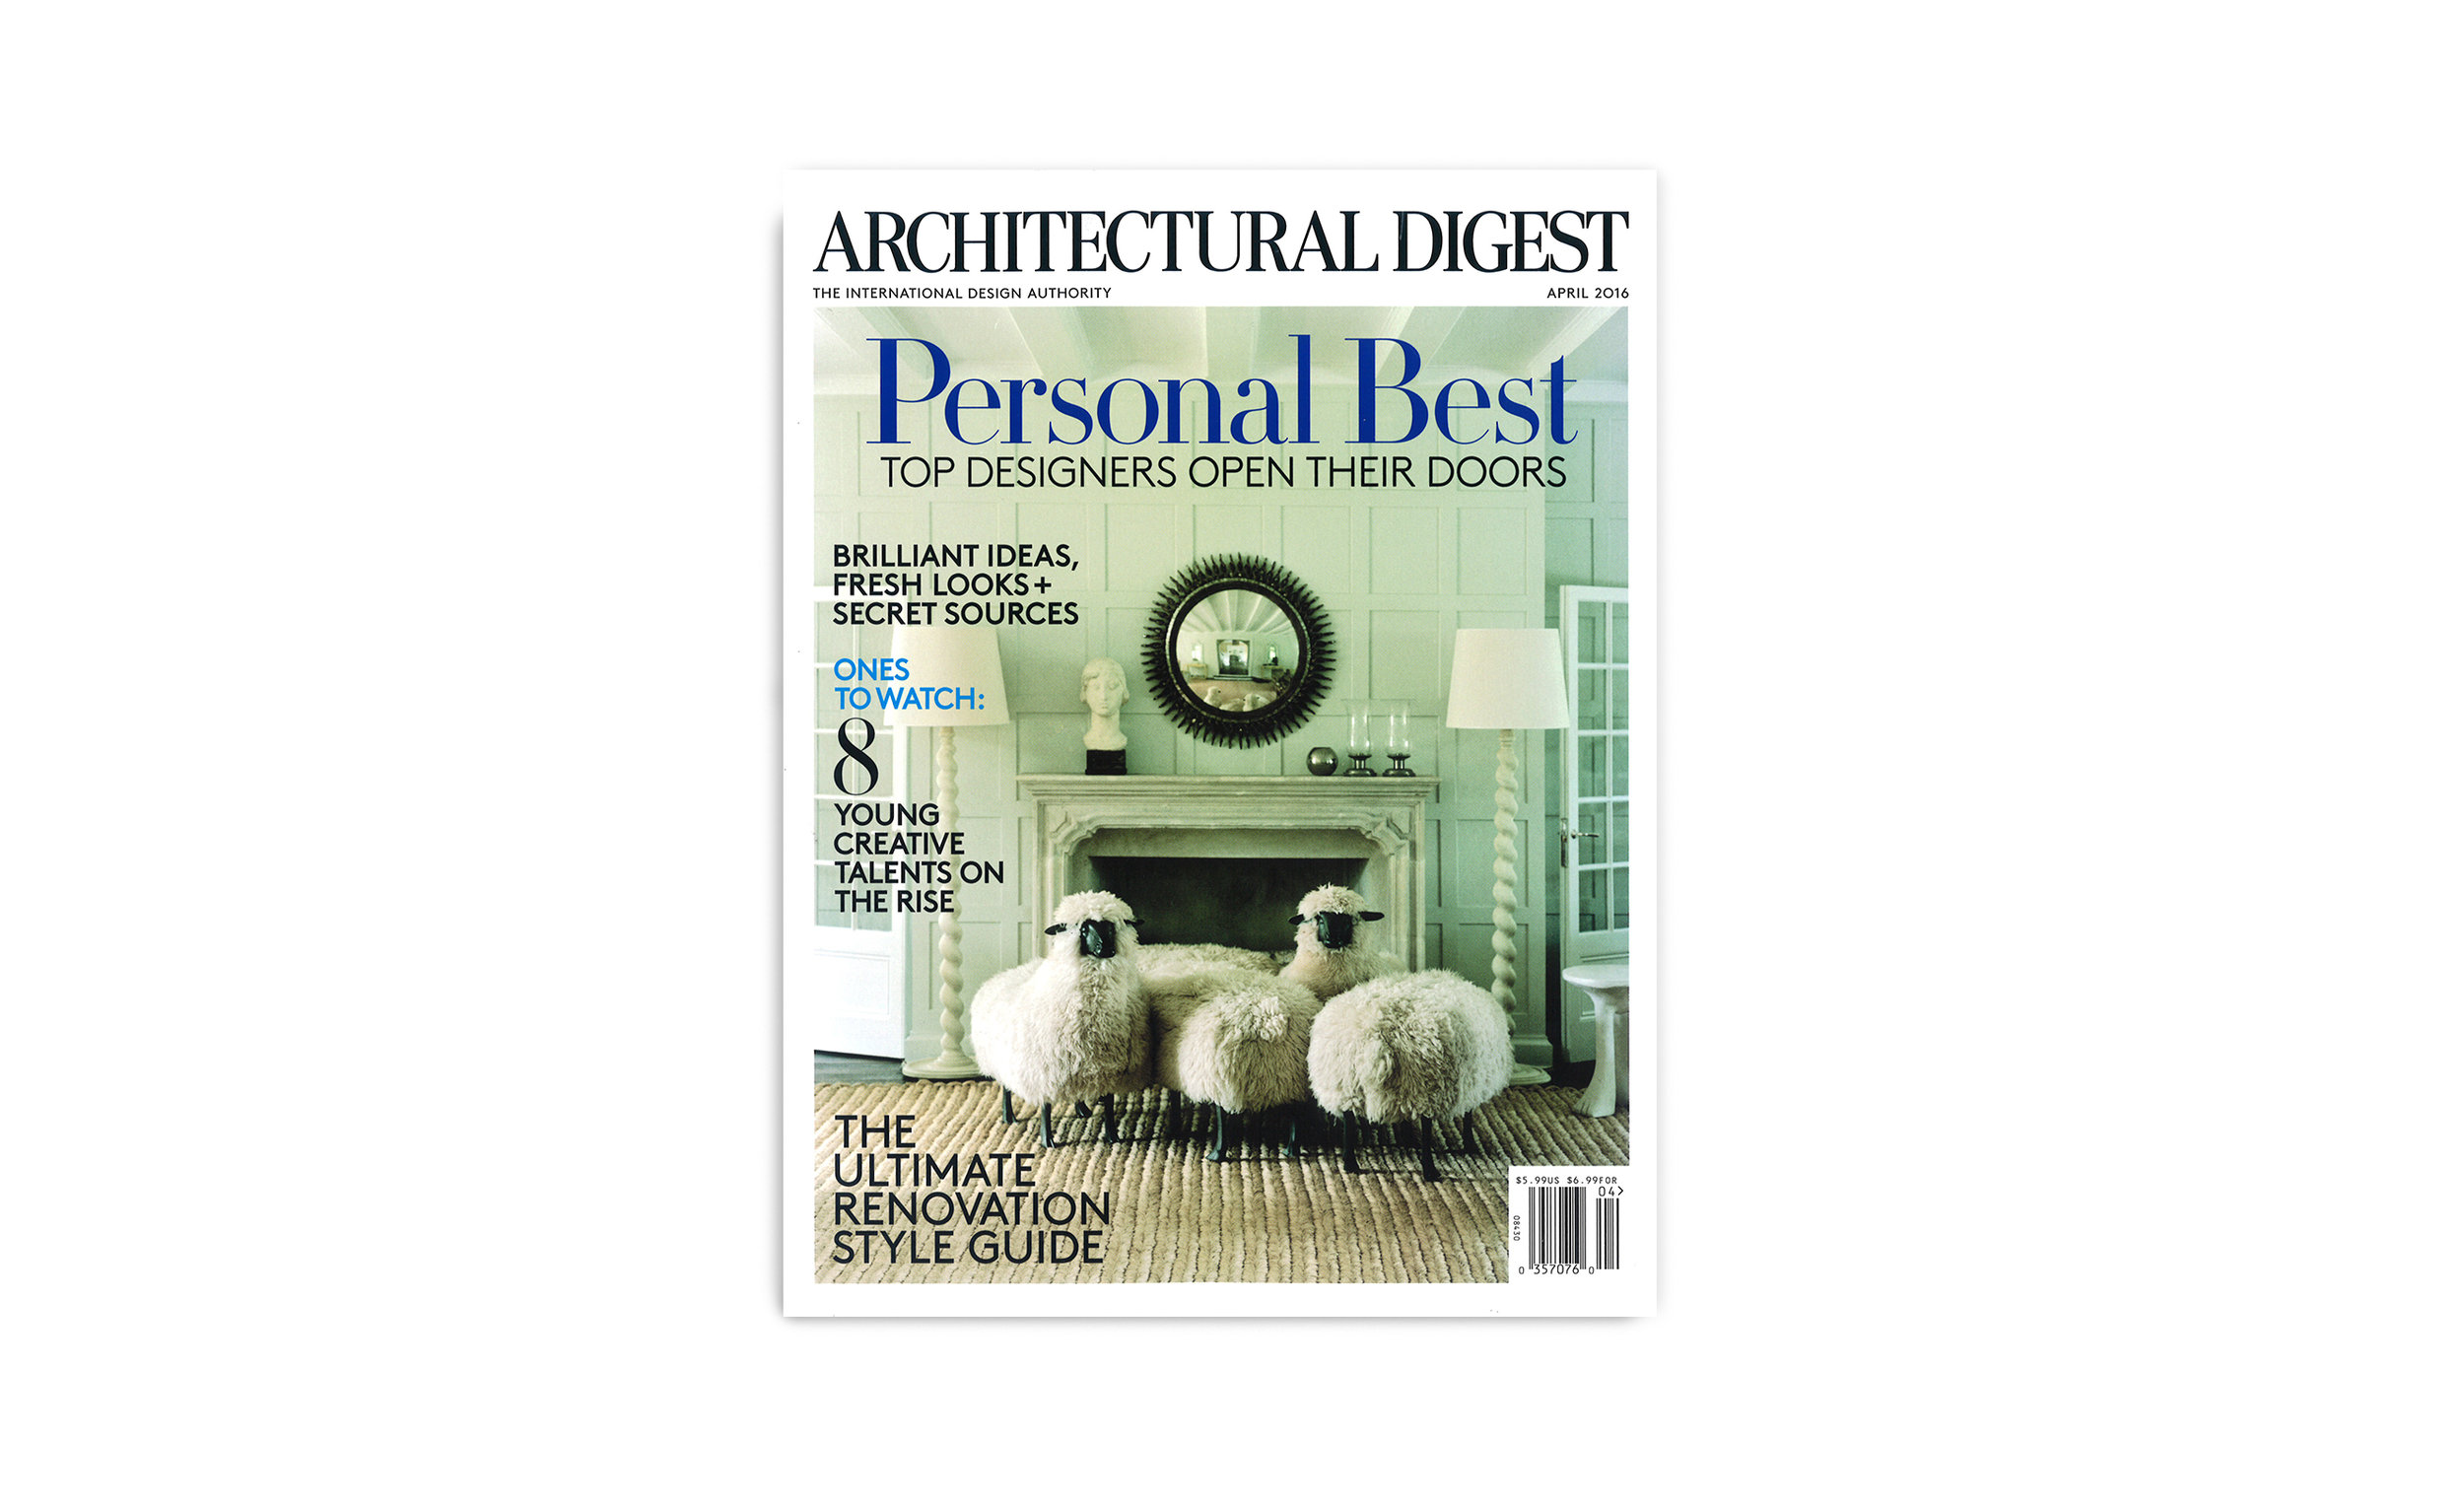 ARCHITECTURAL DIGEST COVER.jpg